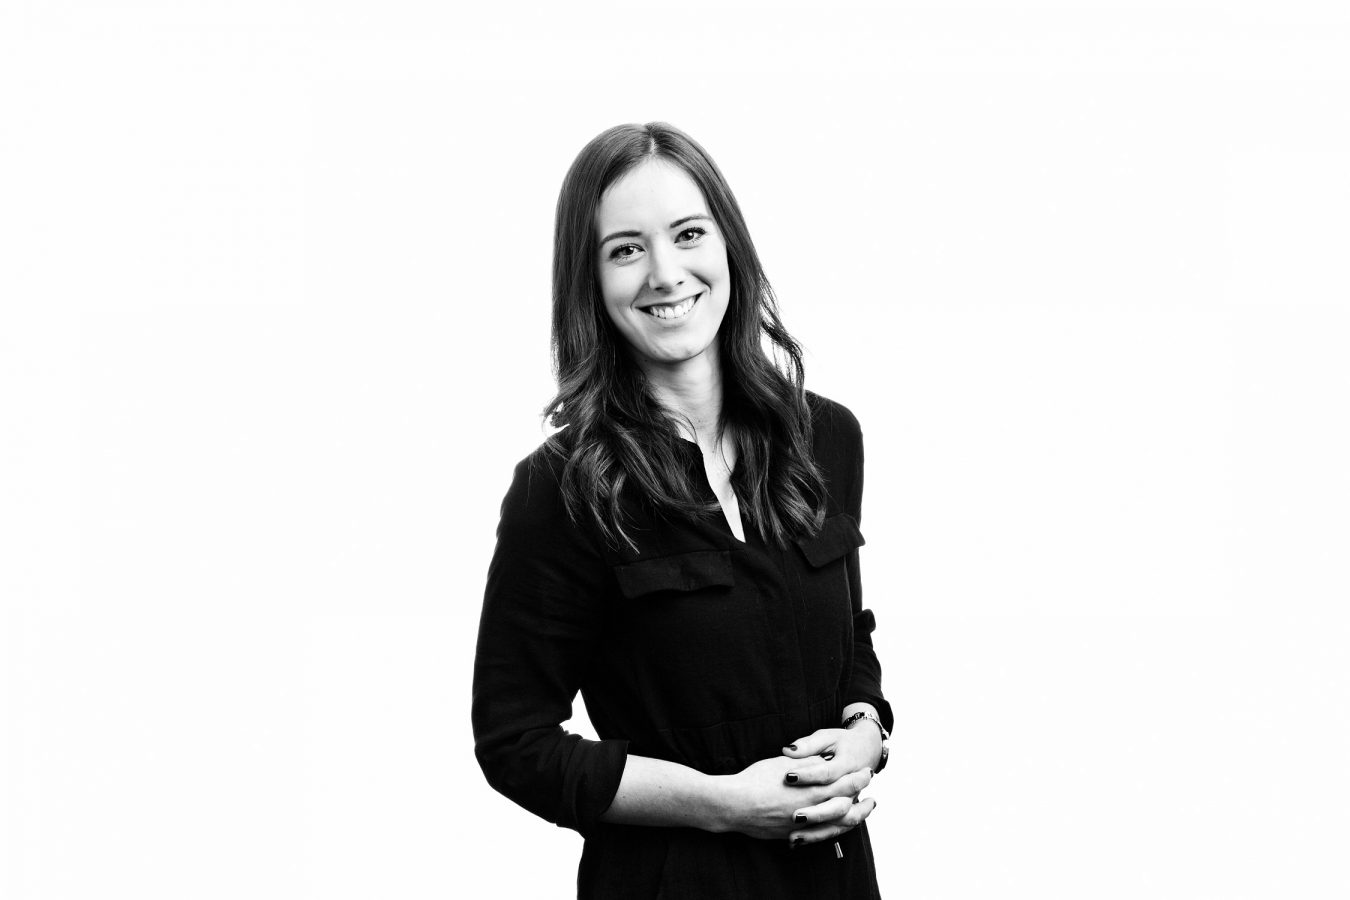 young-woman-office-staff-portrait-studio-black-and-white